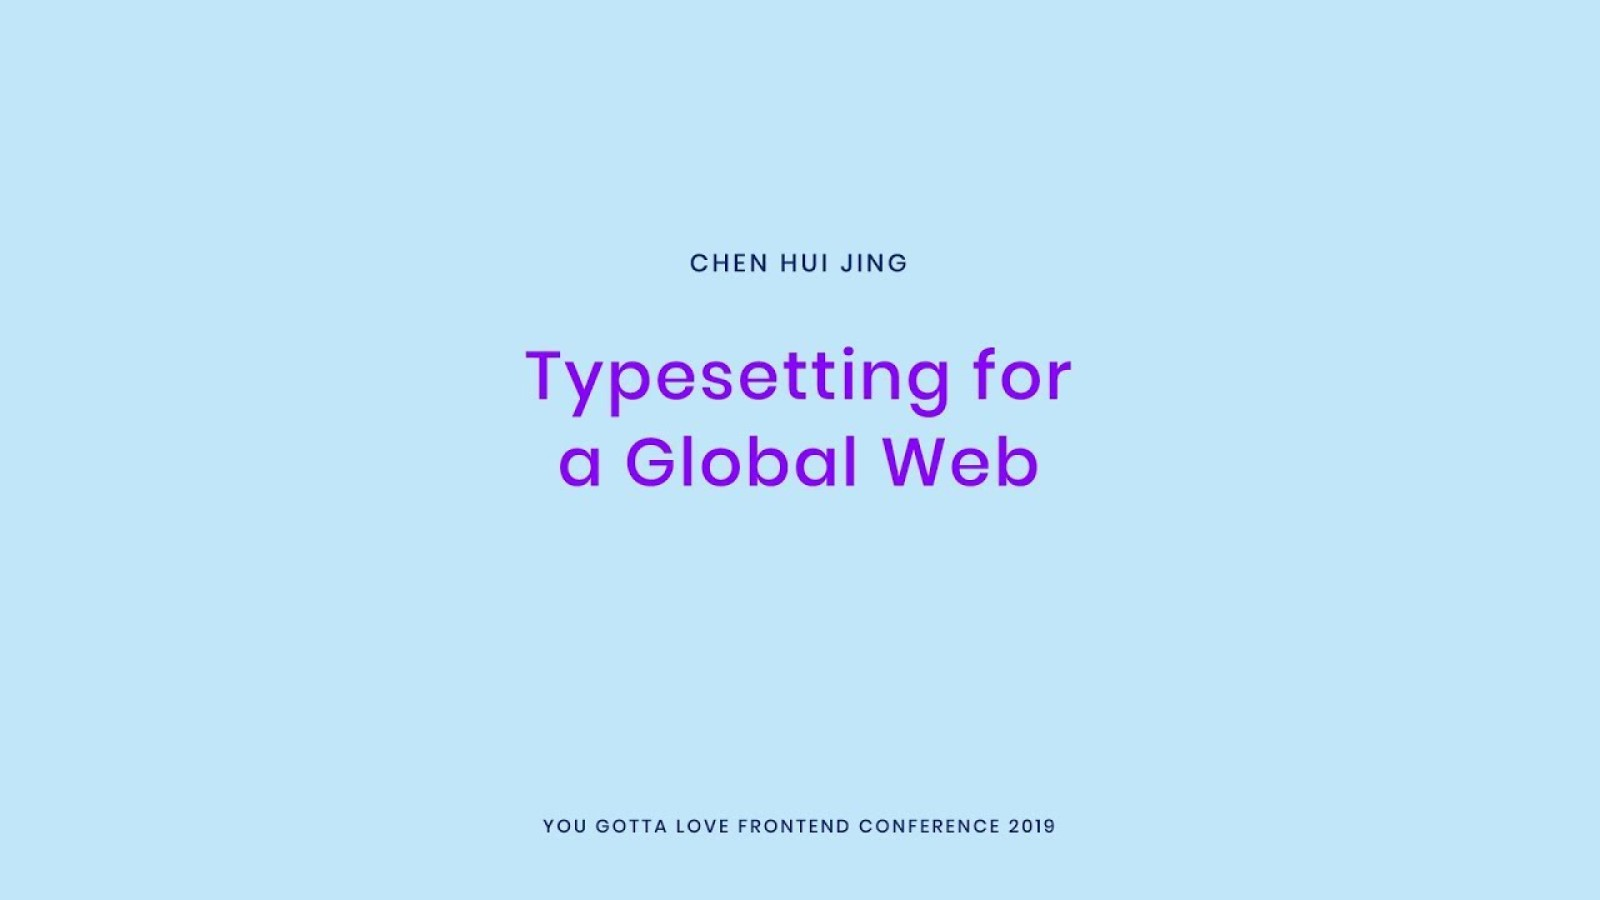 Typesetting for a global web